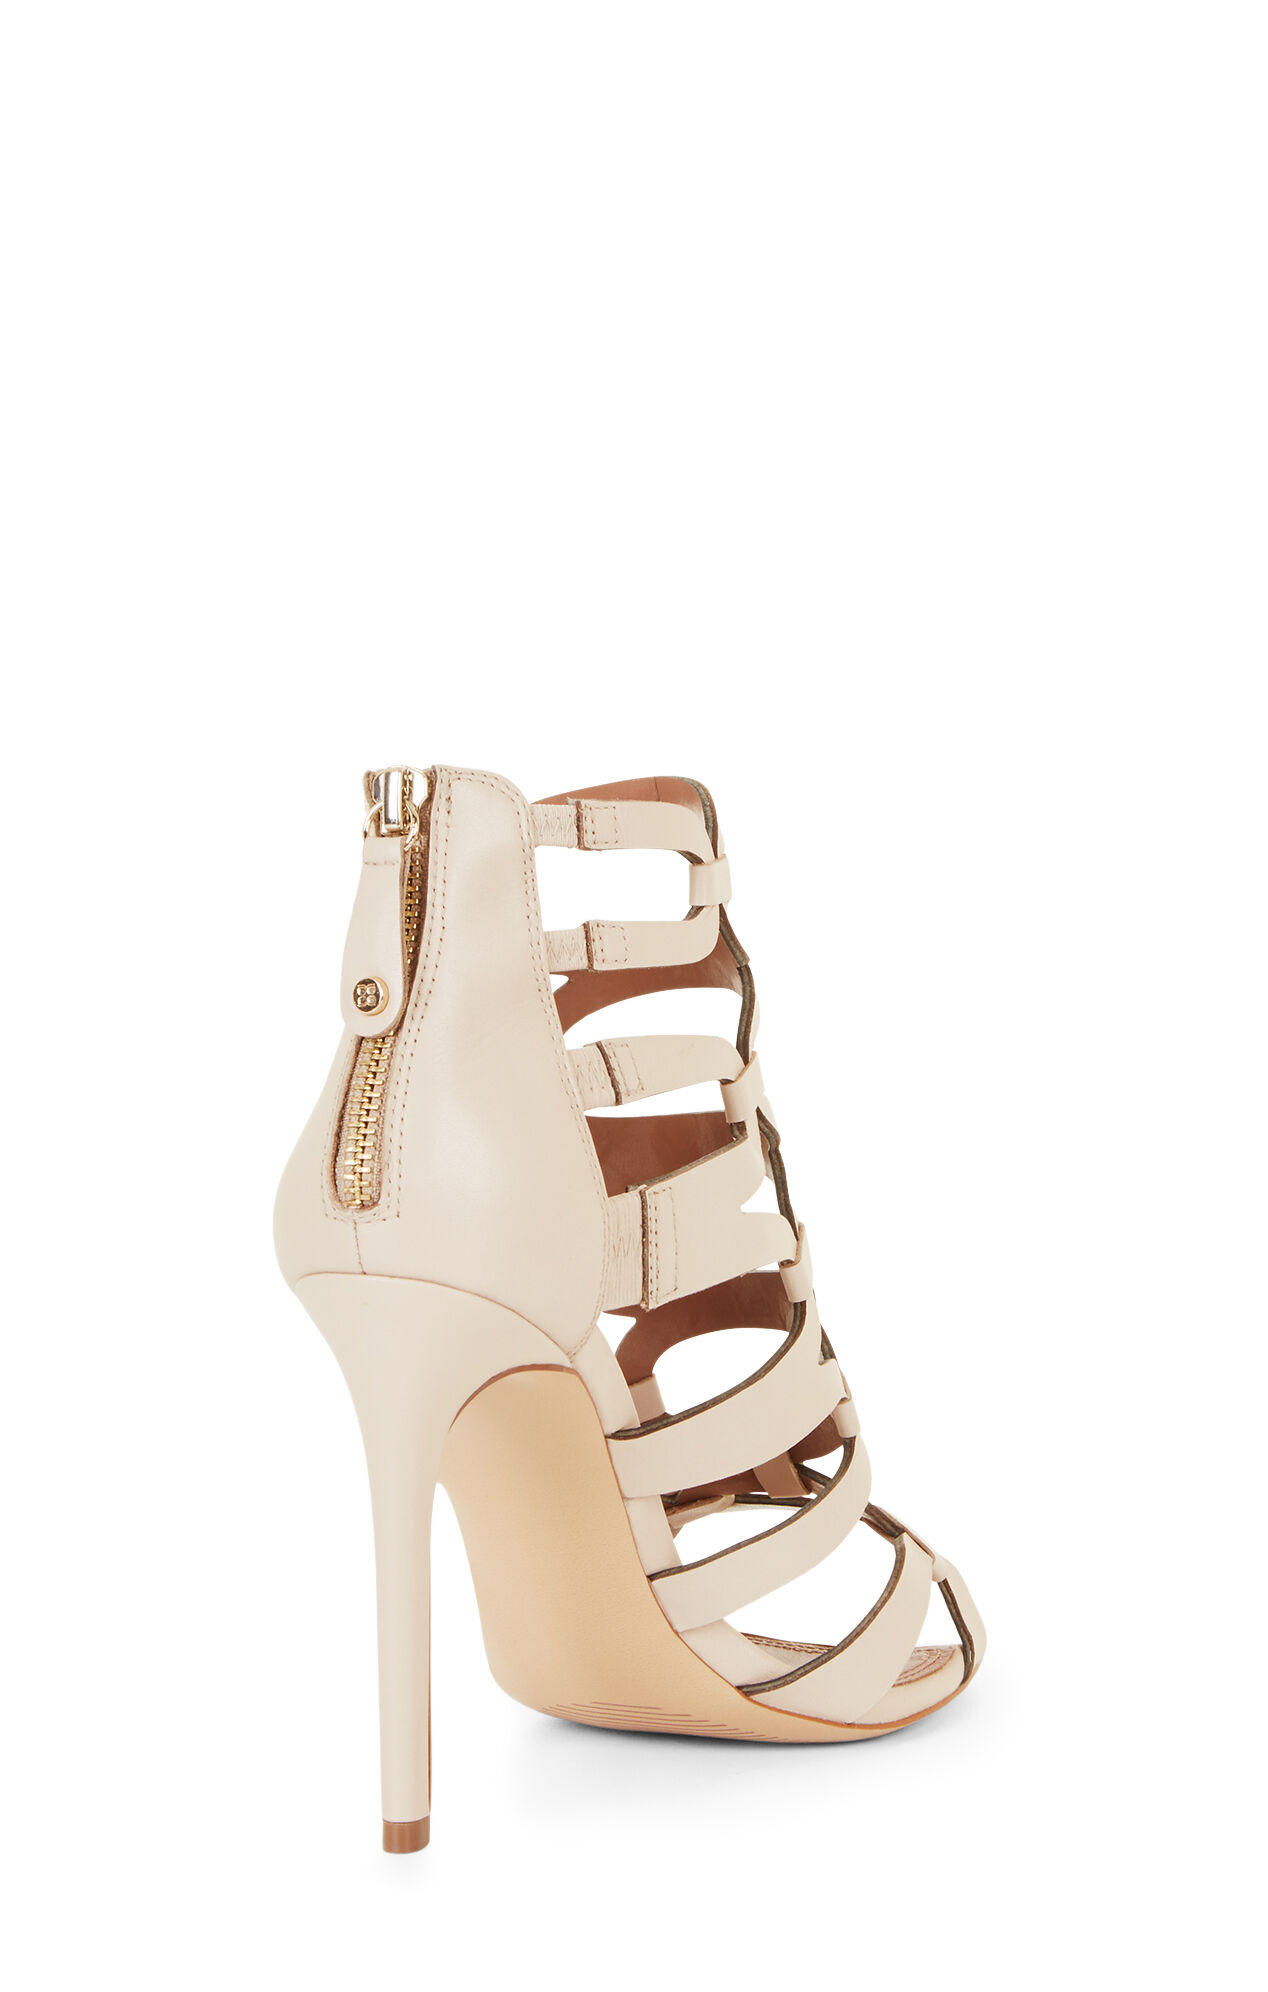 Vicenza Leather Sandals